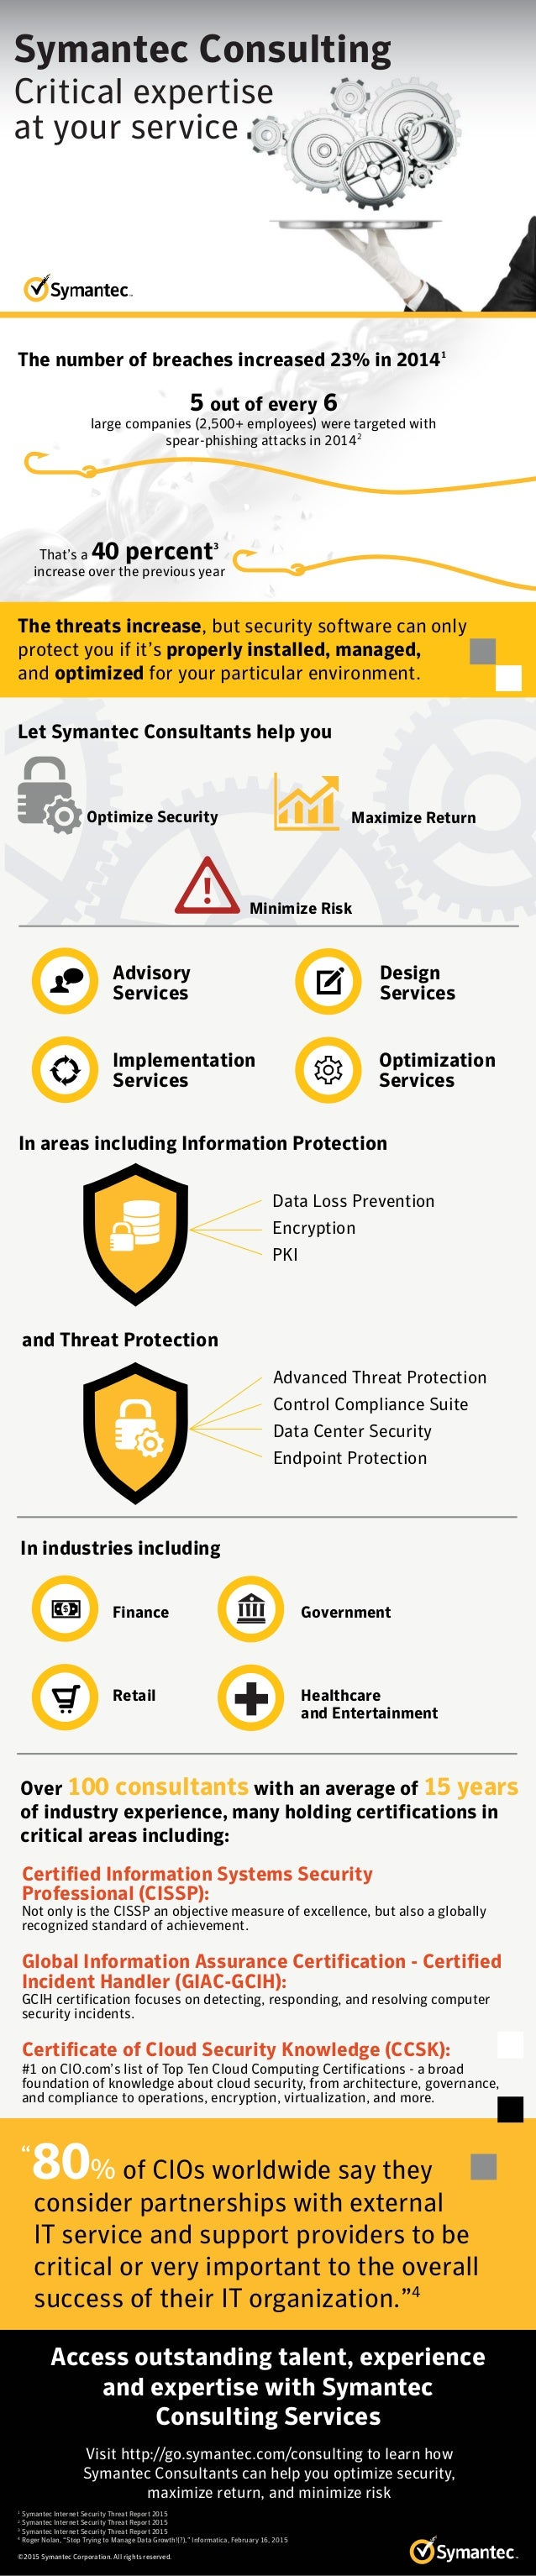 Advisory Services Implementation Services Design Services Optimization Services The threats increase, but security softwar...